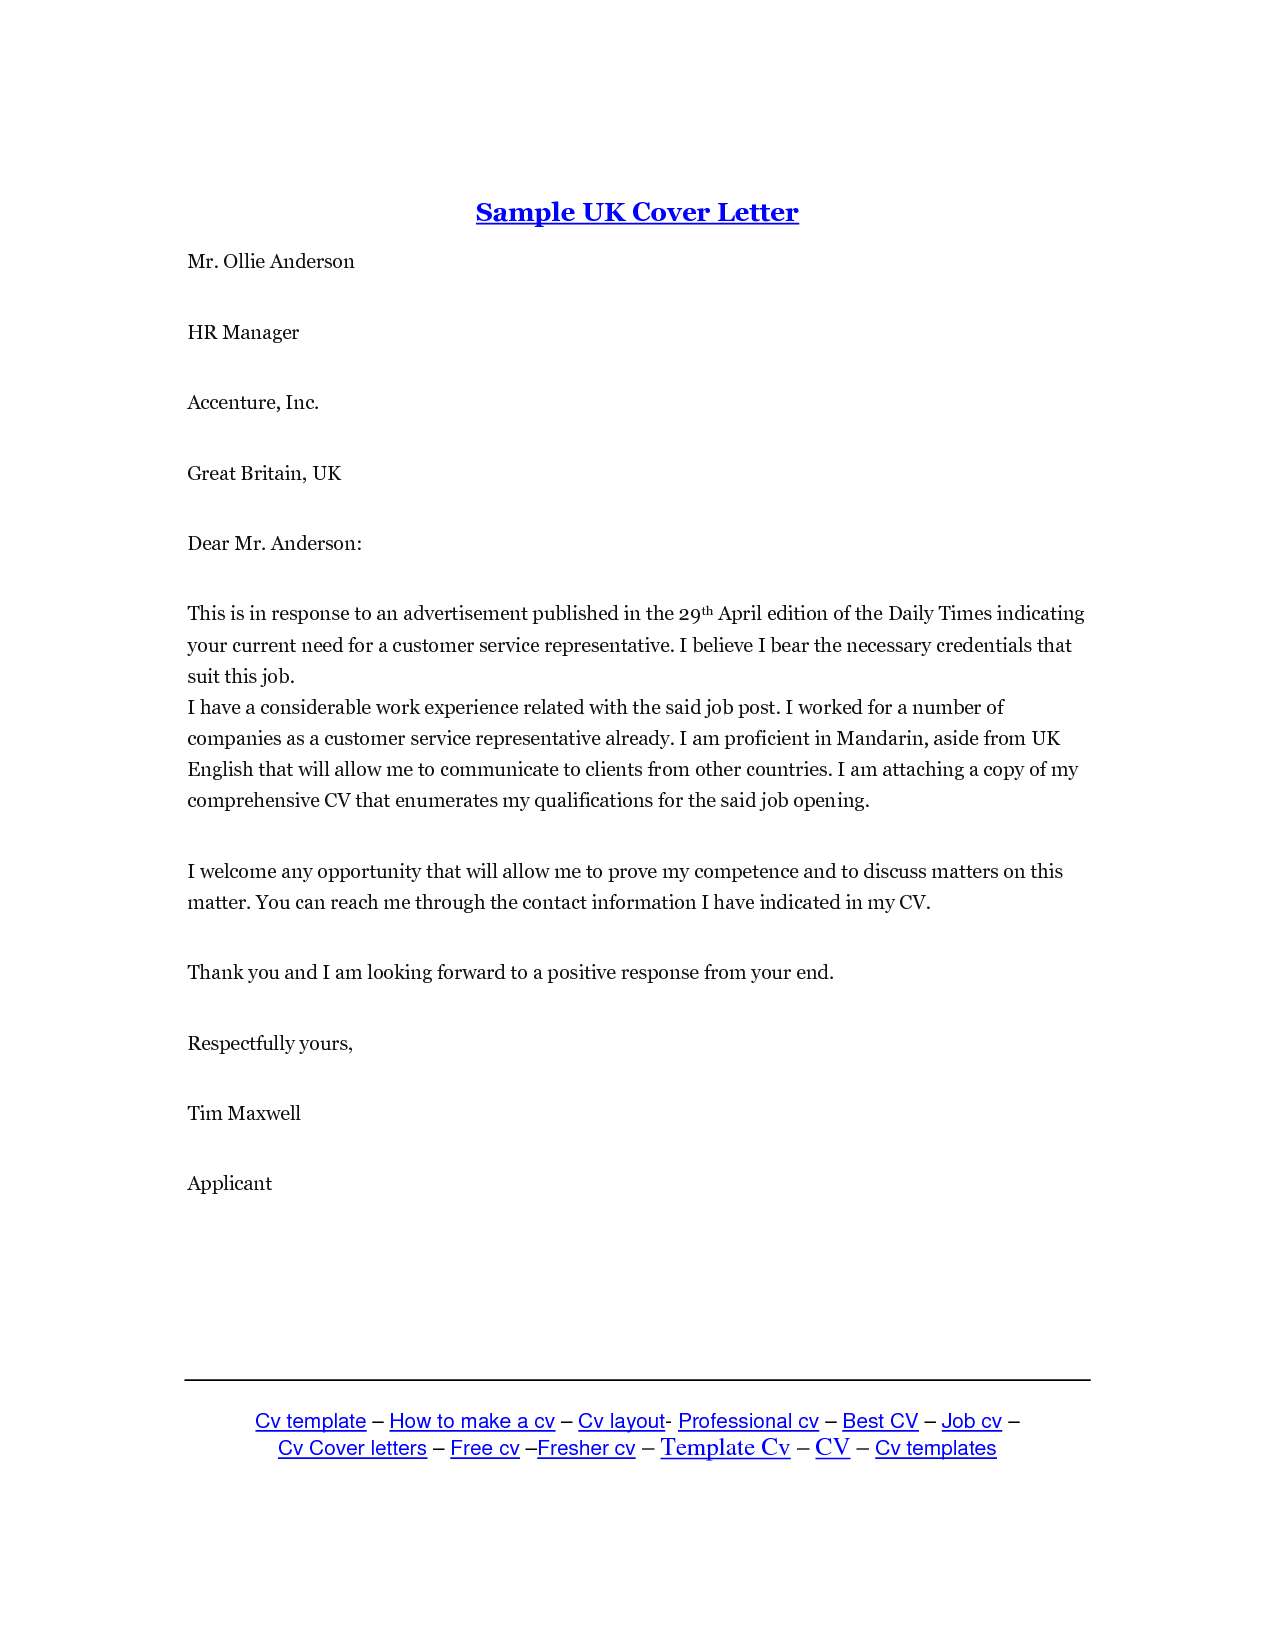 Email Cover Letter Template Uk Cover letter template